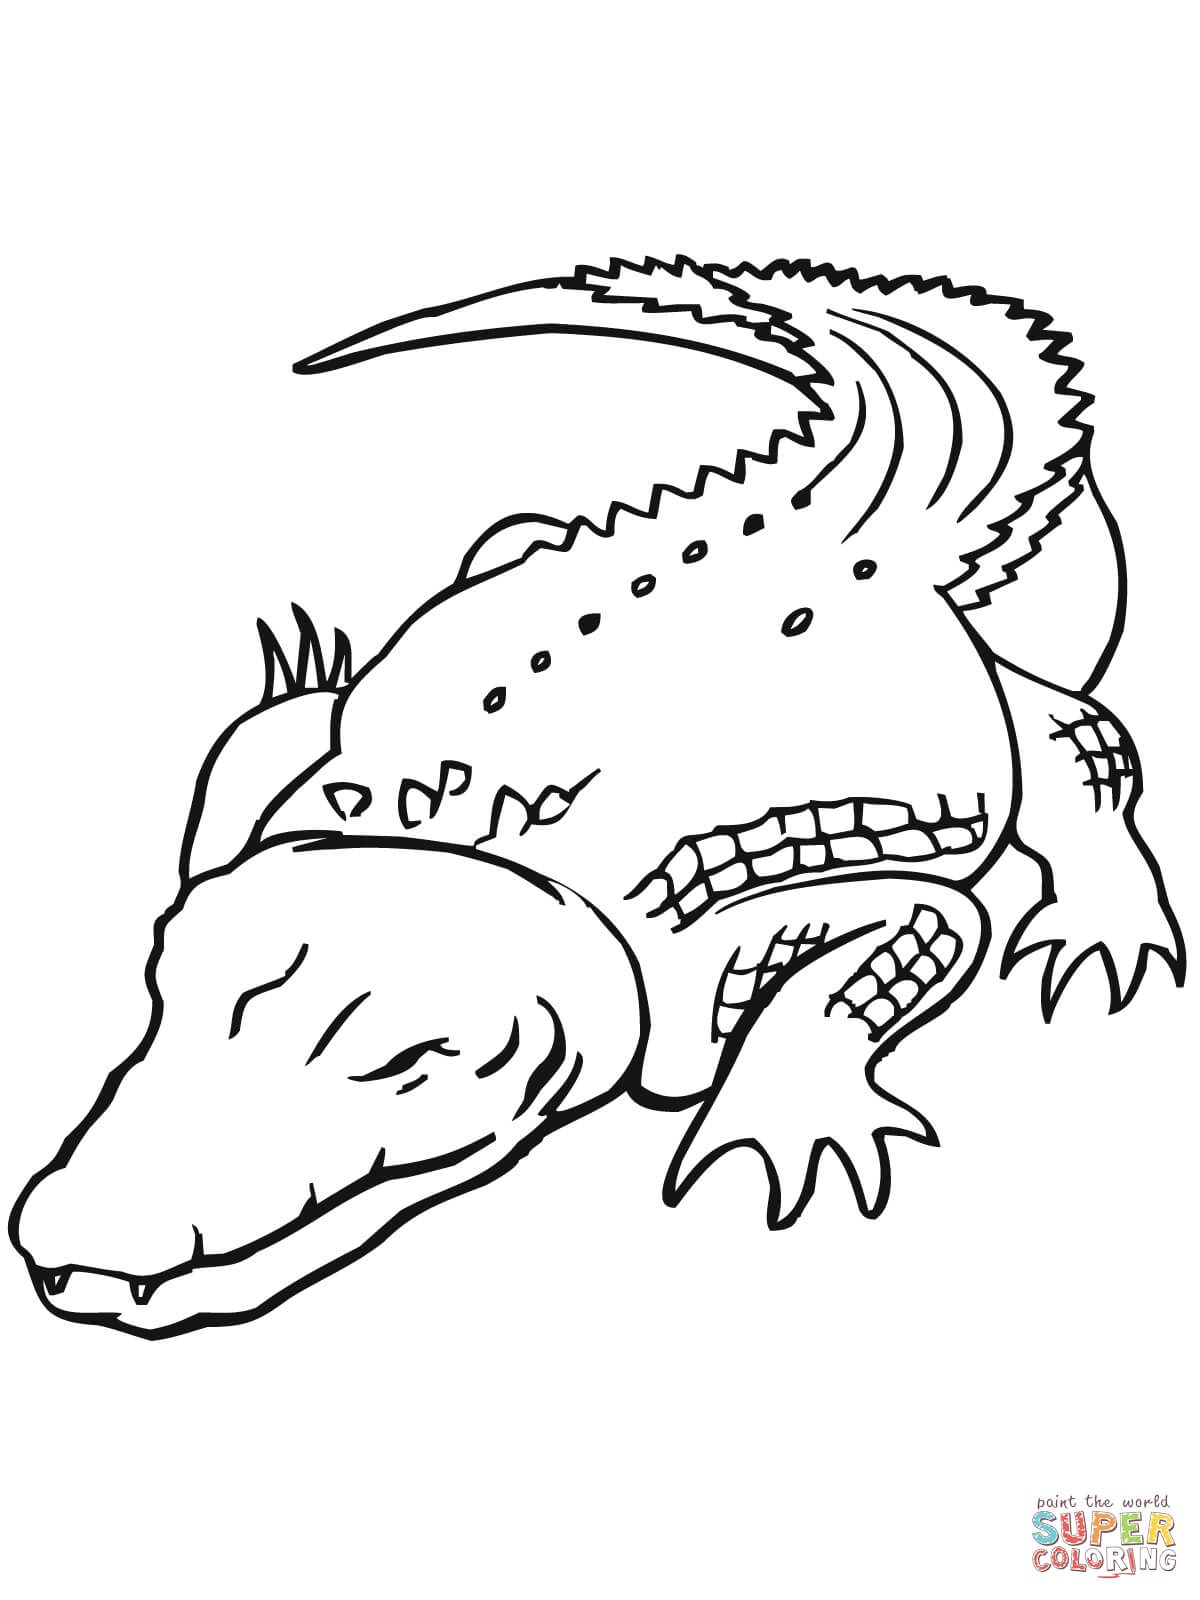 Australian Saltwater Crocodile Coloring Page | Free Printable - Free Printable Pictures Of Crocodiles